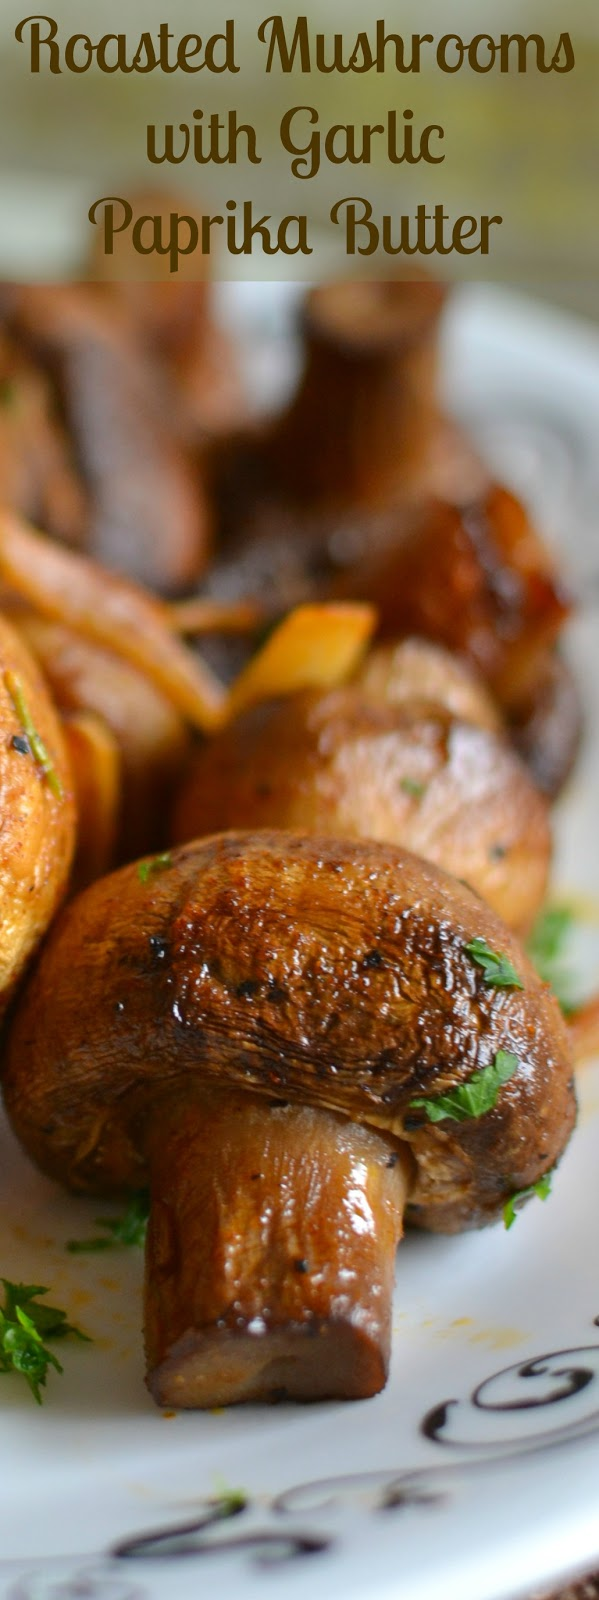 An easy side or meatless main dish for any mushroom lover! Goes great with most anything including chicken, beef, pork, pasta or rice! Roasted Mushrooms with Garlic Paprika Butter Recipe from Hot Eats and Cool Reads